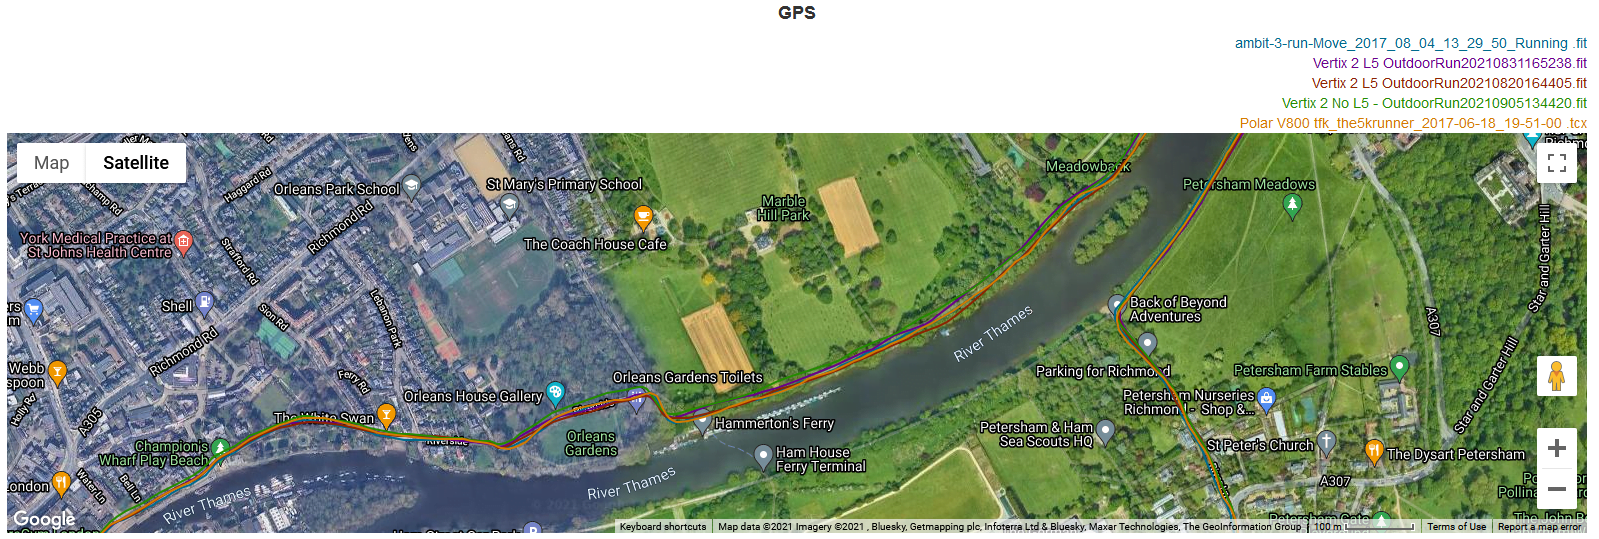 Click to compare GNSS track on analyze.dcrainmaker.com